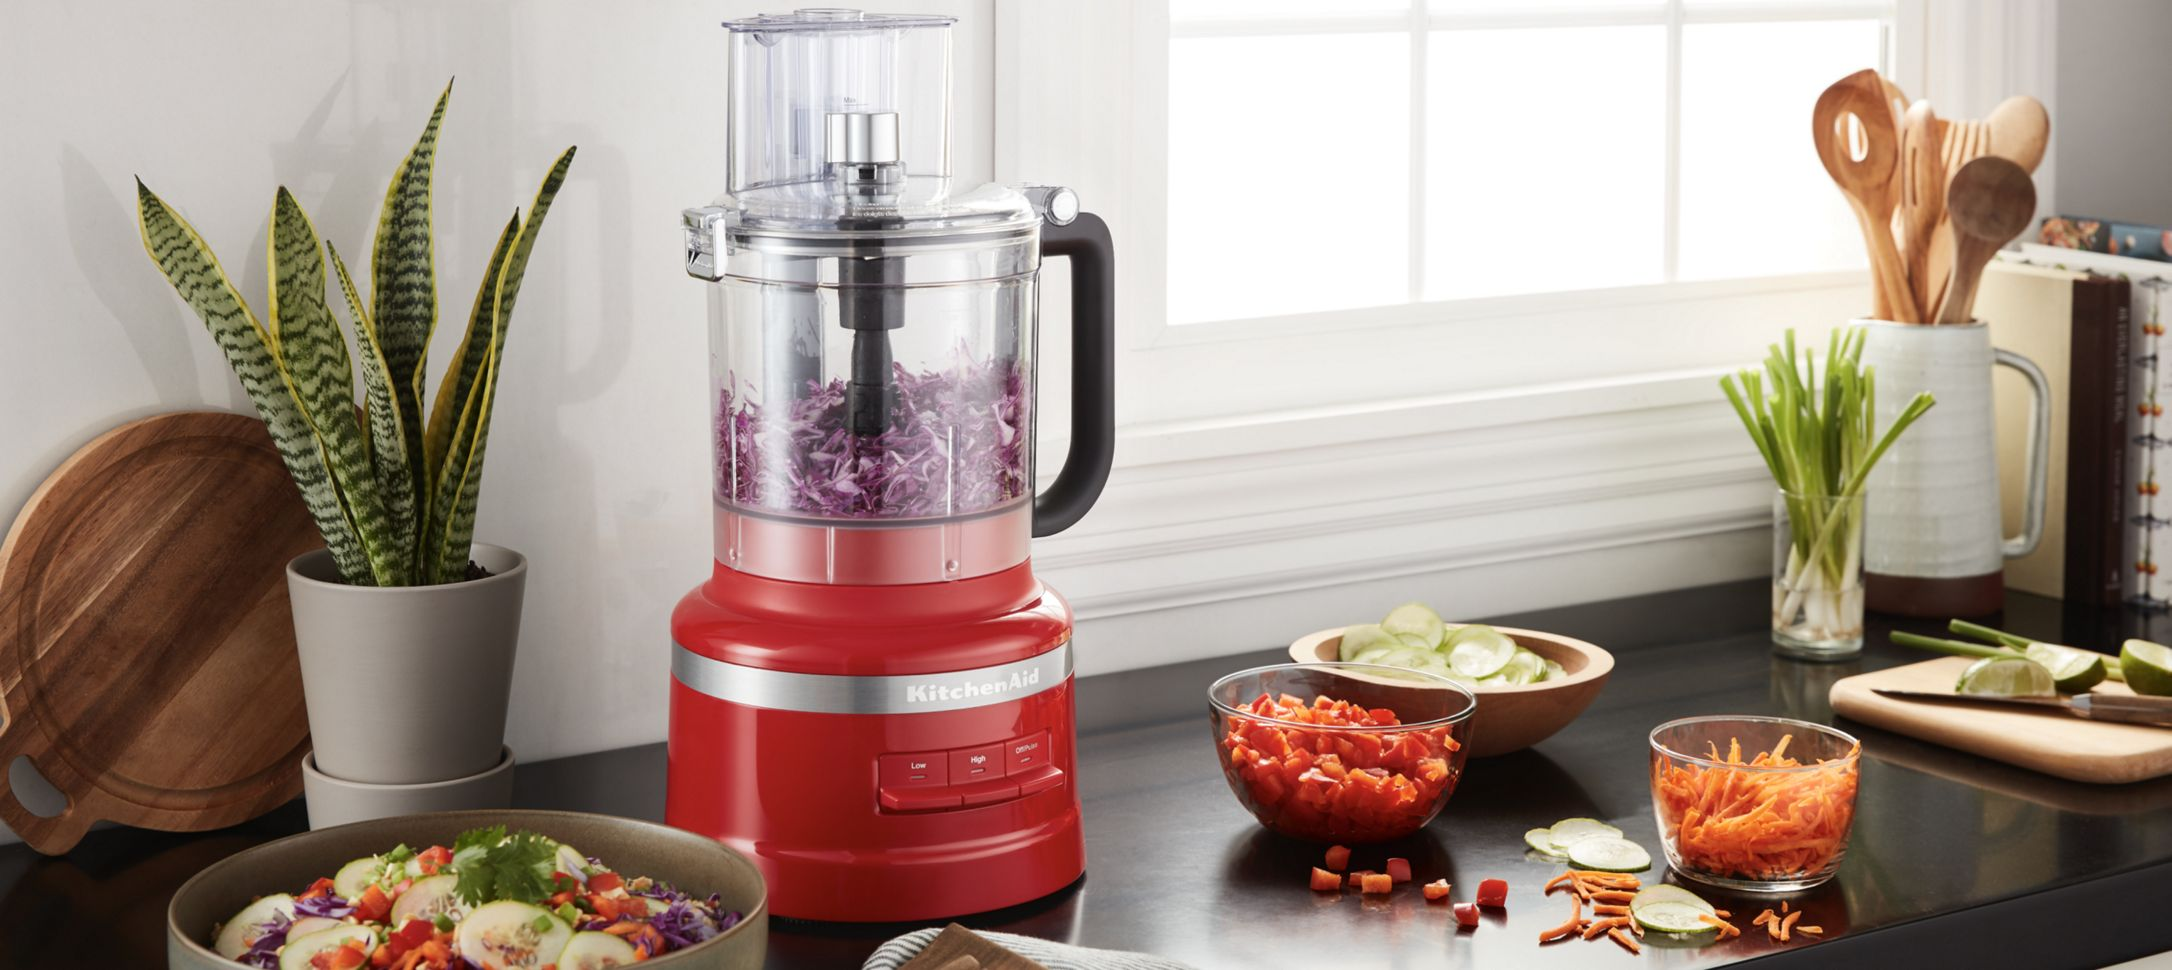 A 13 Cup Food Processor holding red cabbage.